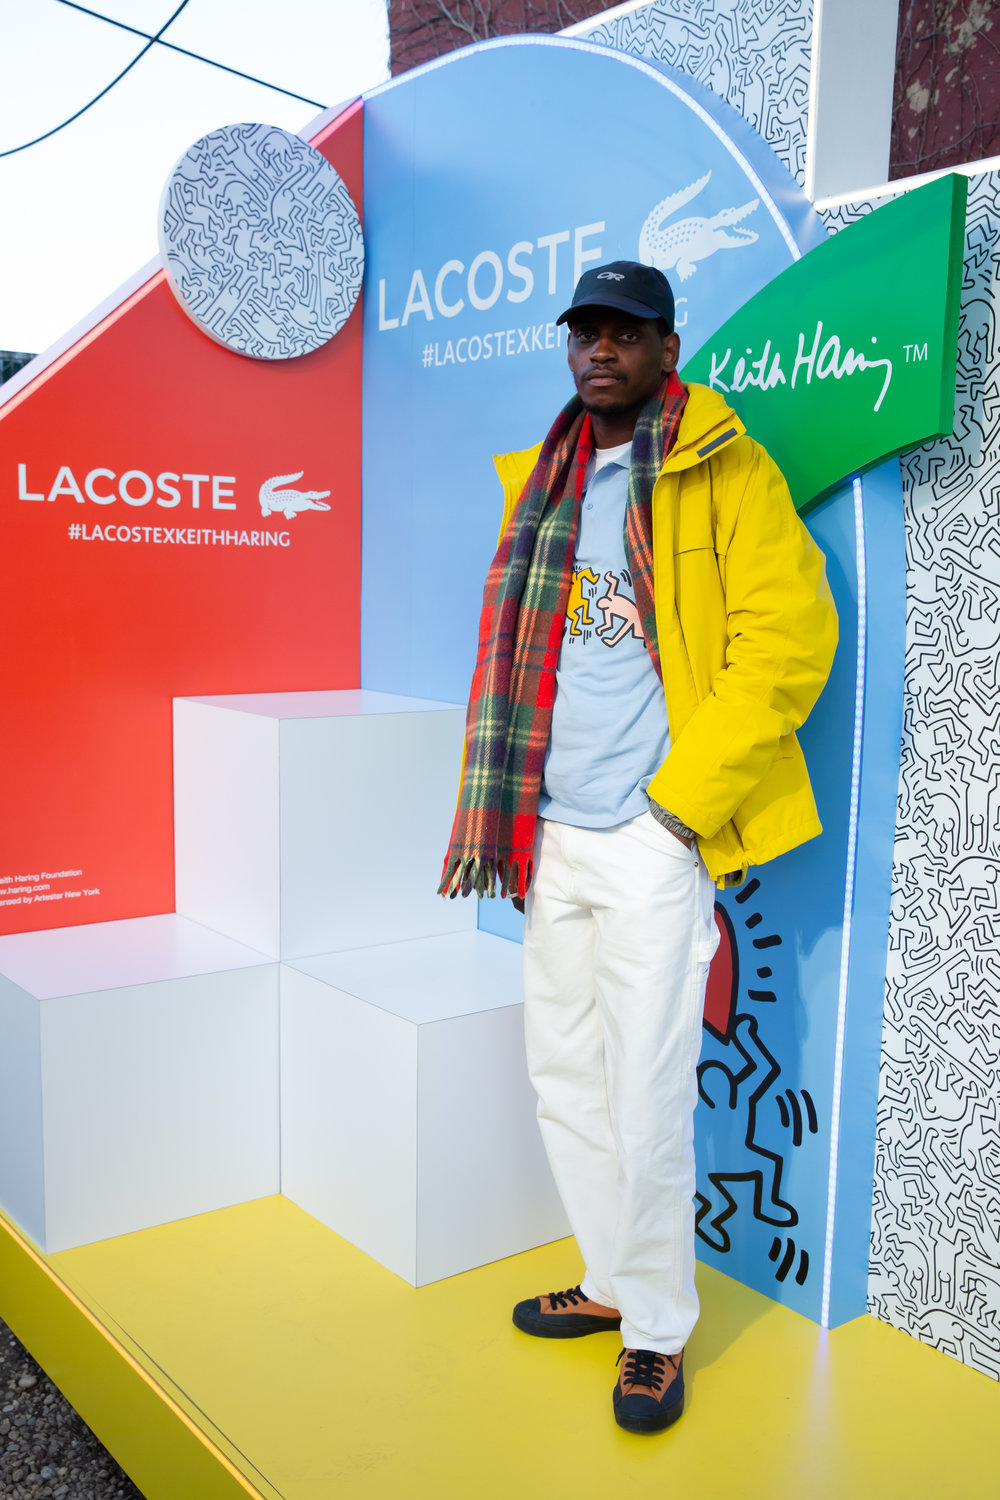 A$AP Nast attends The Lacoste x Keith Haring Global Launch Party at Pioneer Works on Tuesday, March 26th, 2019. Photographed by Max Lakner/BFA.